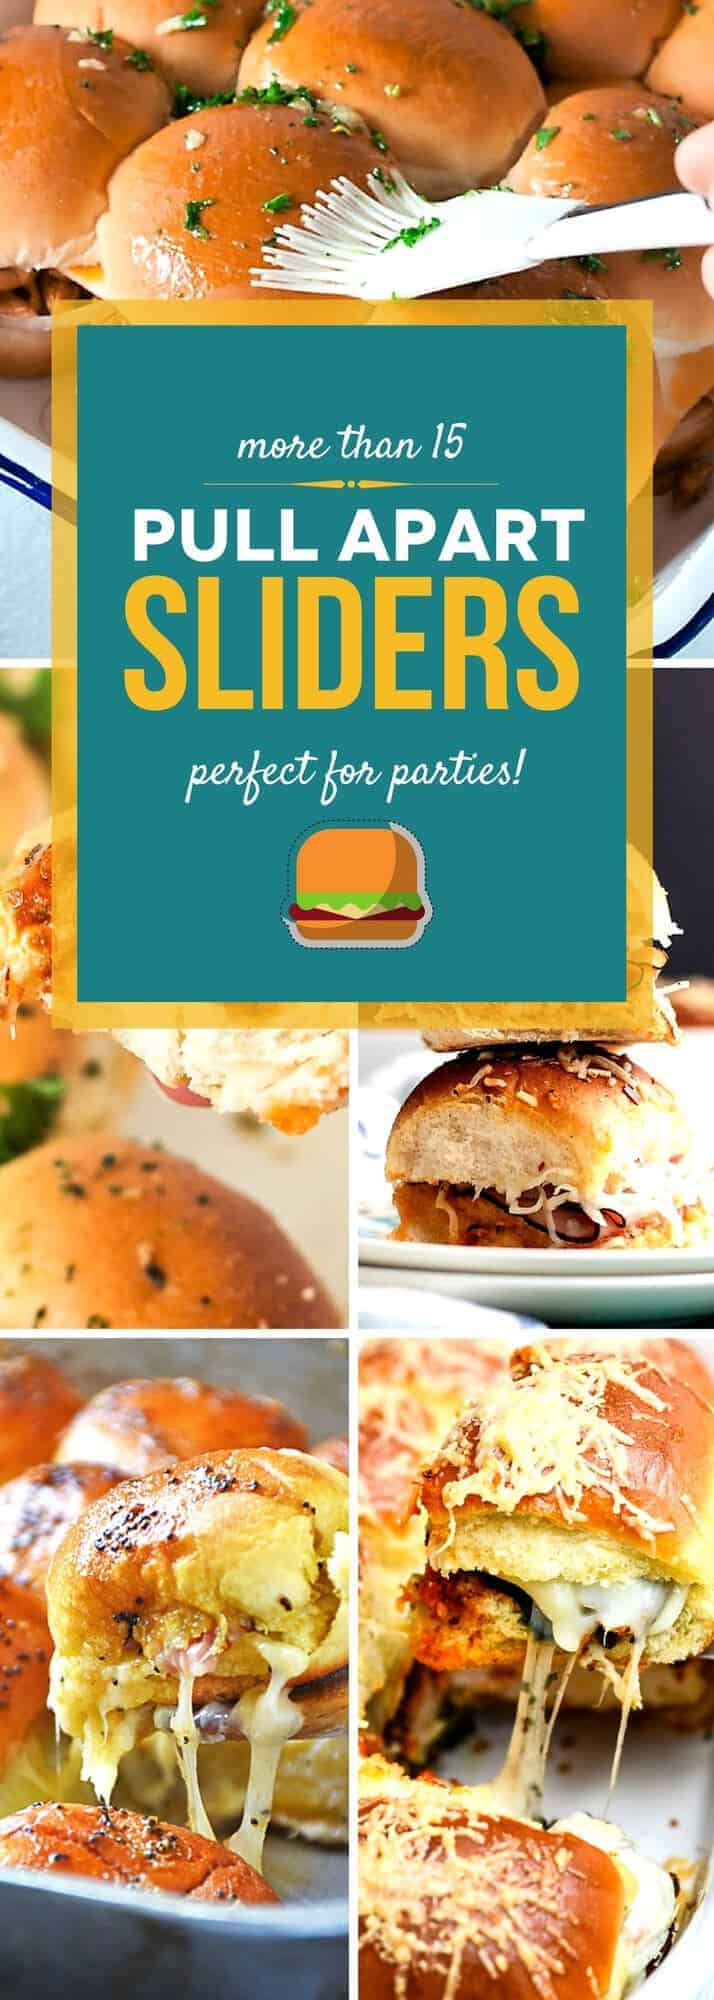 Pull apart sliders are perfect for feeding a crowd! Whether you're throwing a party or you just want to enjoy a fun dinner with your family, this collection of slider recipes gives you plenty of fun and easy sandwich ideas to choose from. Prepare, bake, and serve your favorite pull apart sliders in just minutes! #SundaySupper #partyfood #sandwich #recipeideas #reciperoundup #pullapartsliders